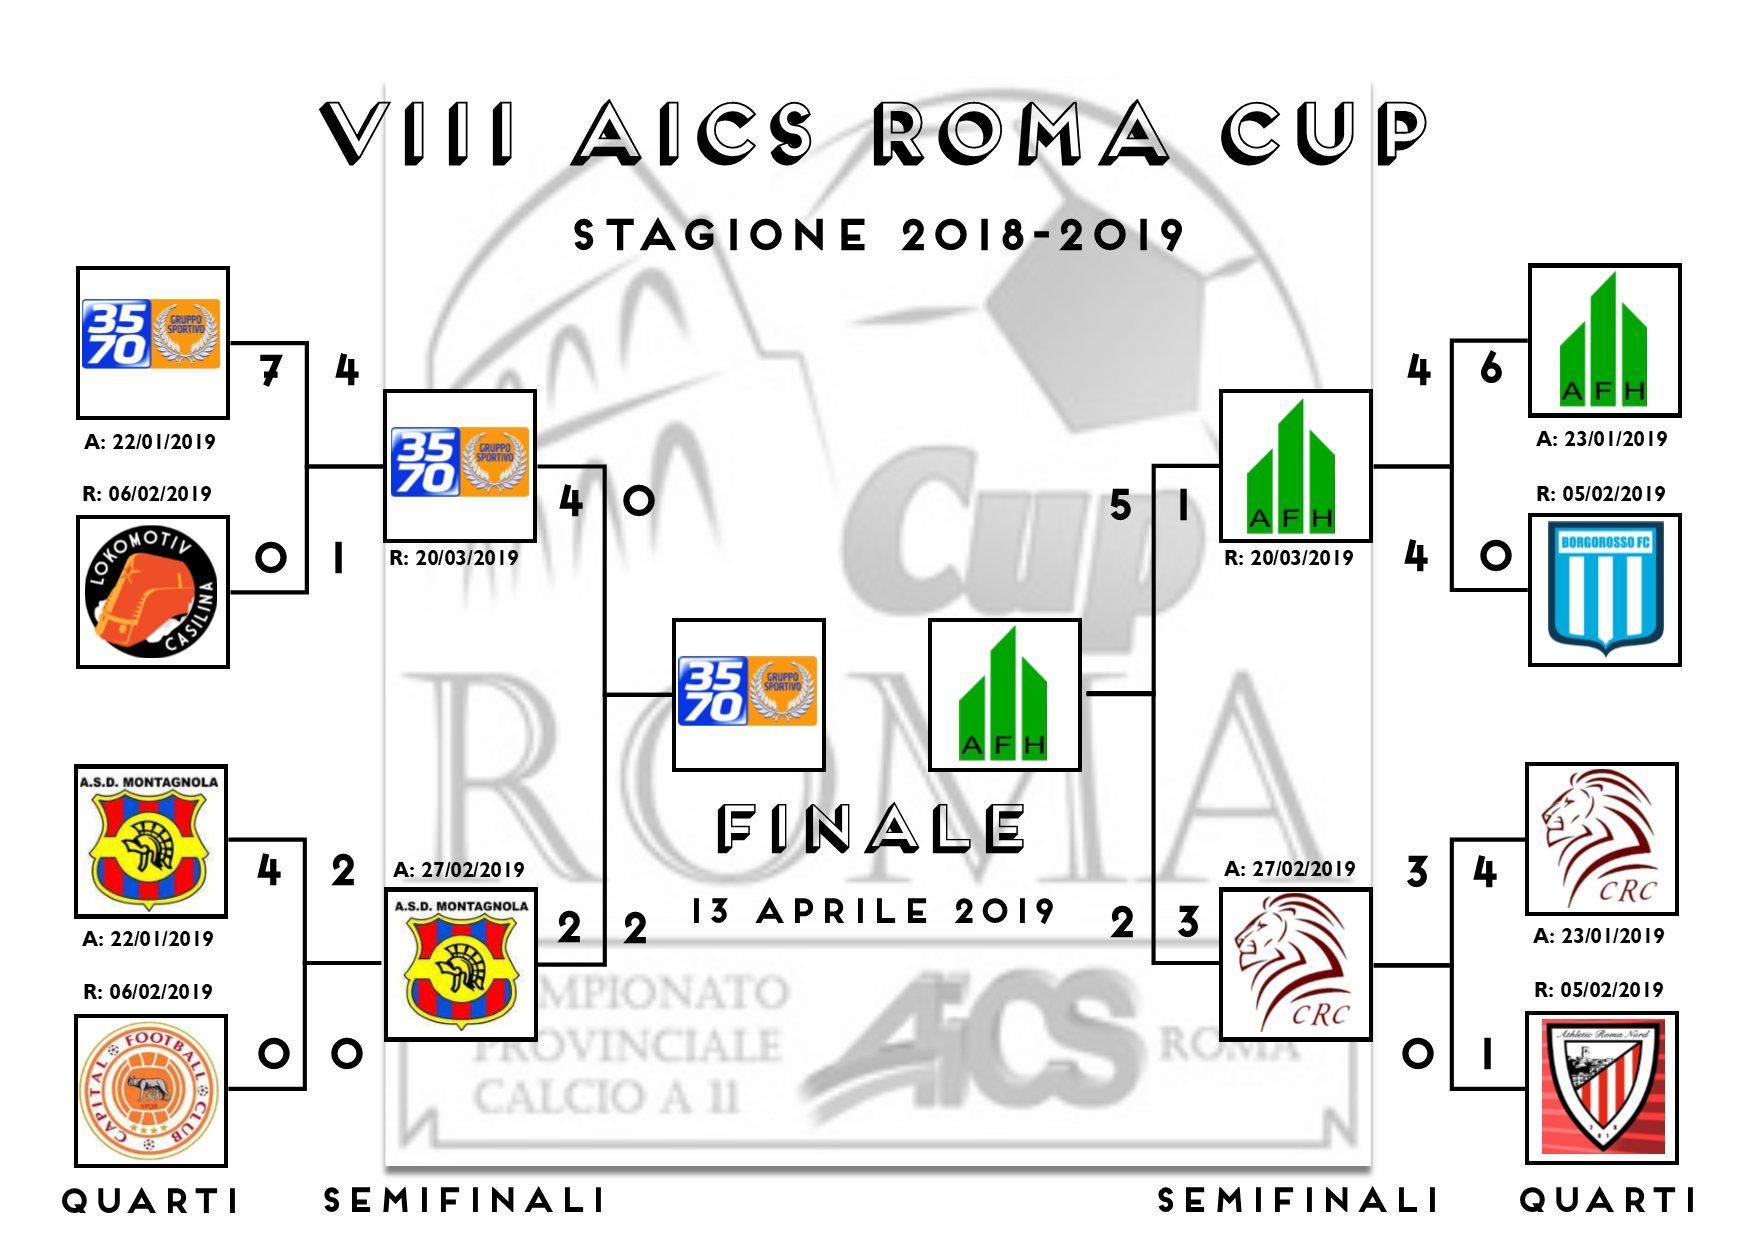 viii-aics-roma-cup-2018-2019-finale.png